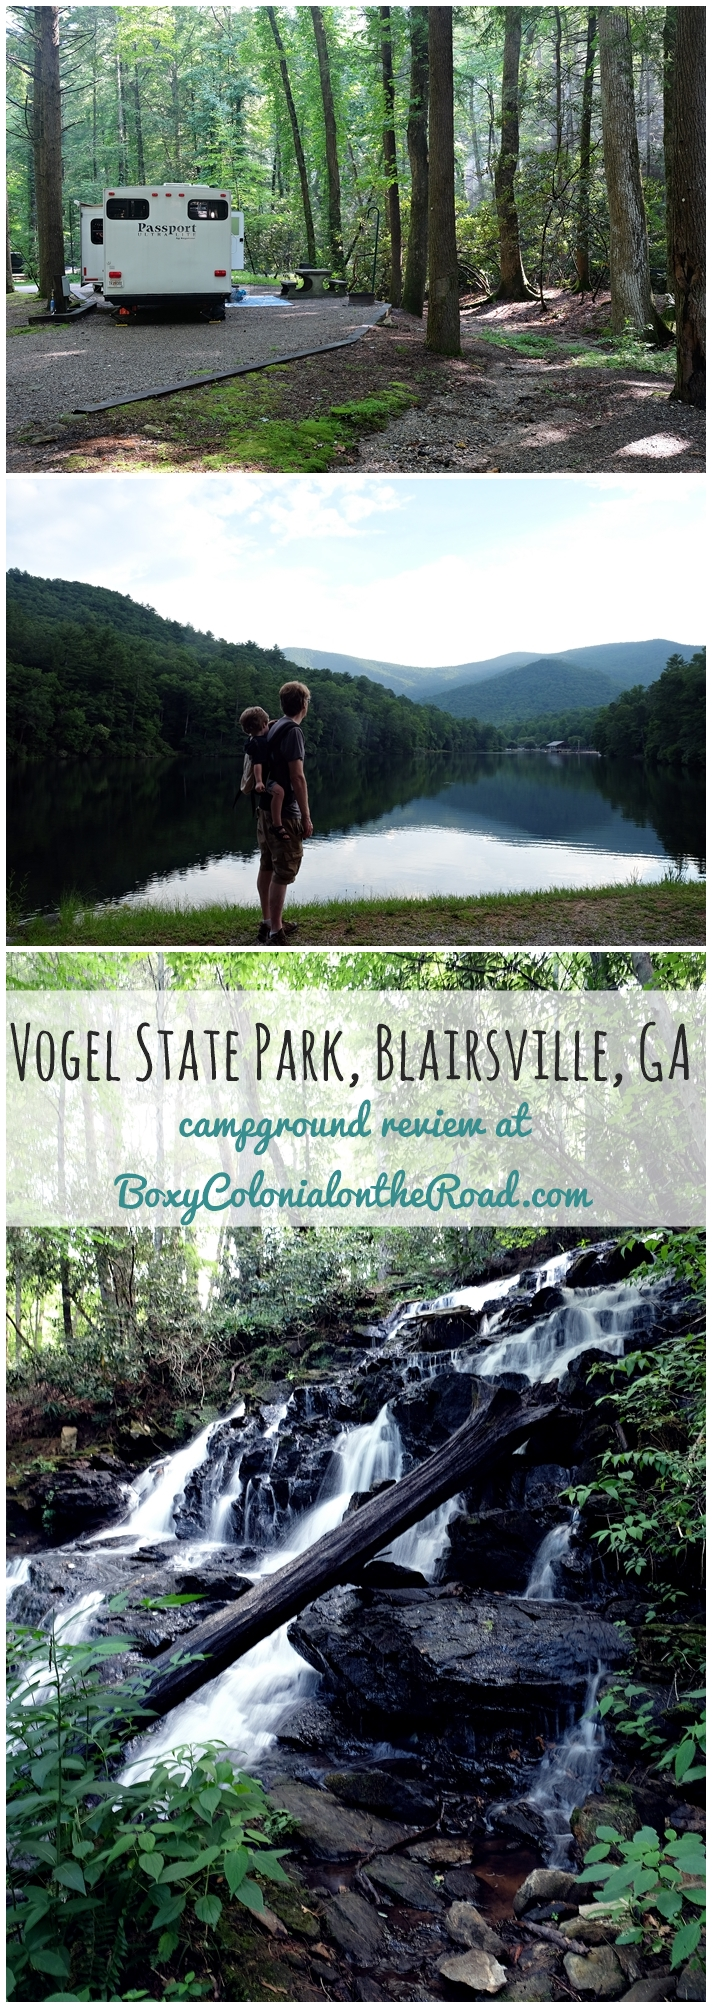 A few days at Vogel State Park in Blairsville, GA with kids: campground review and activities in the park